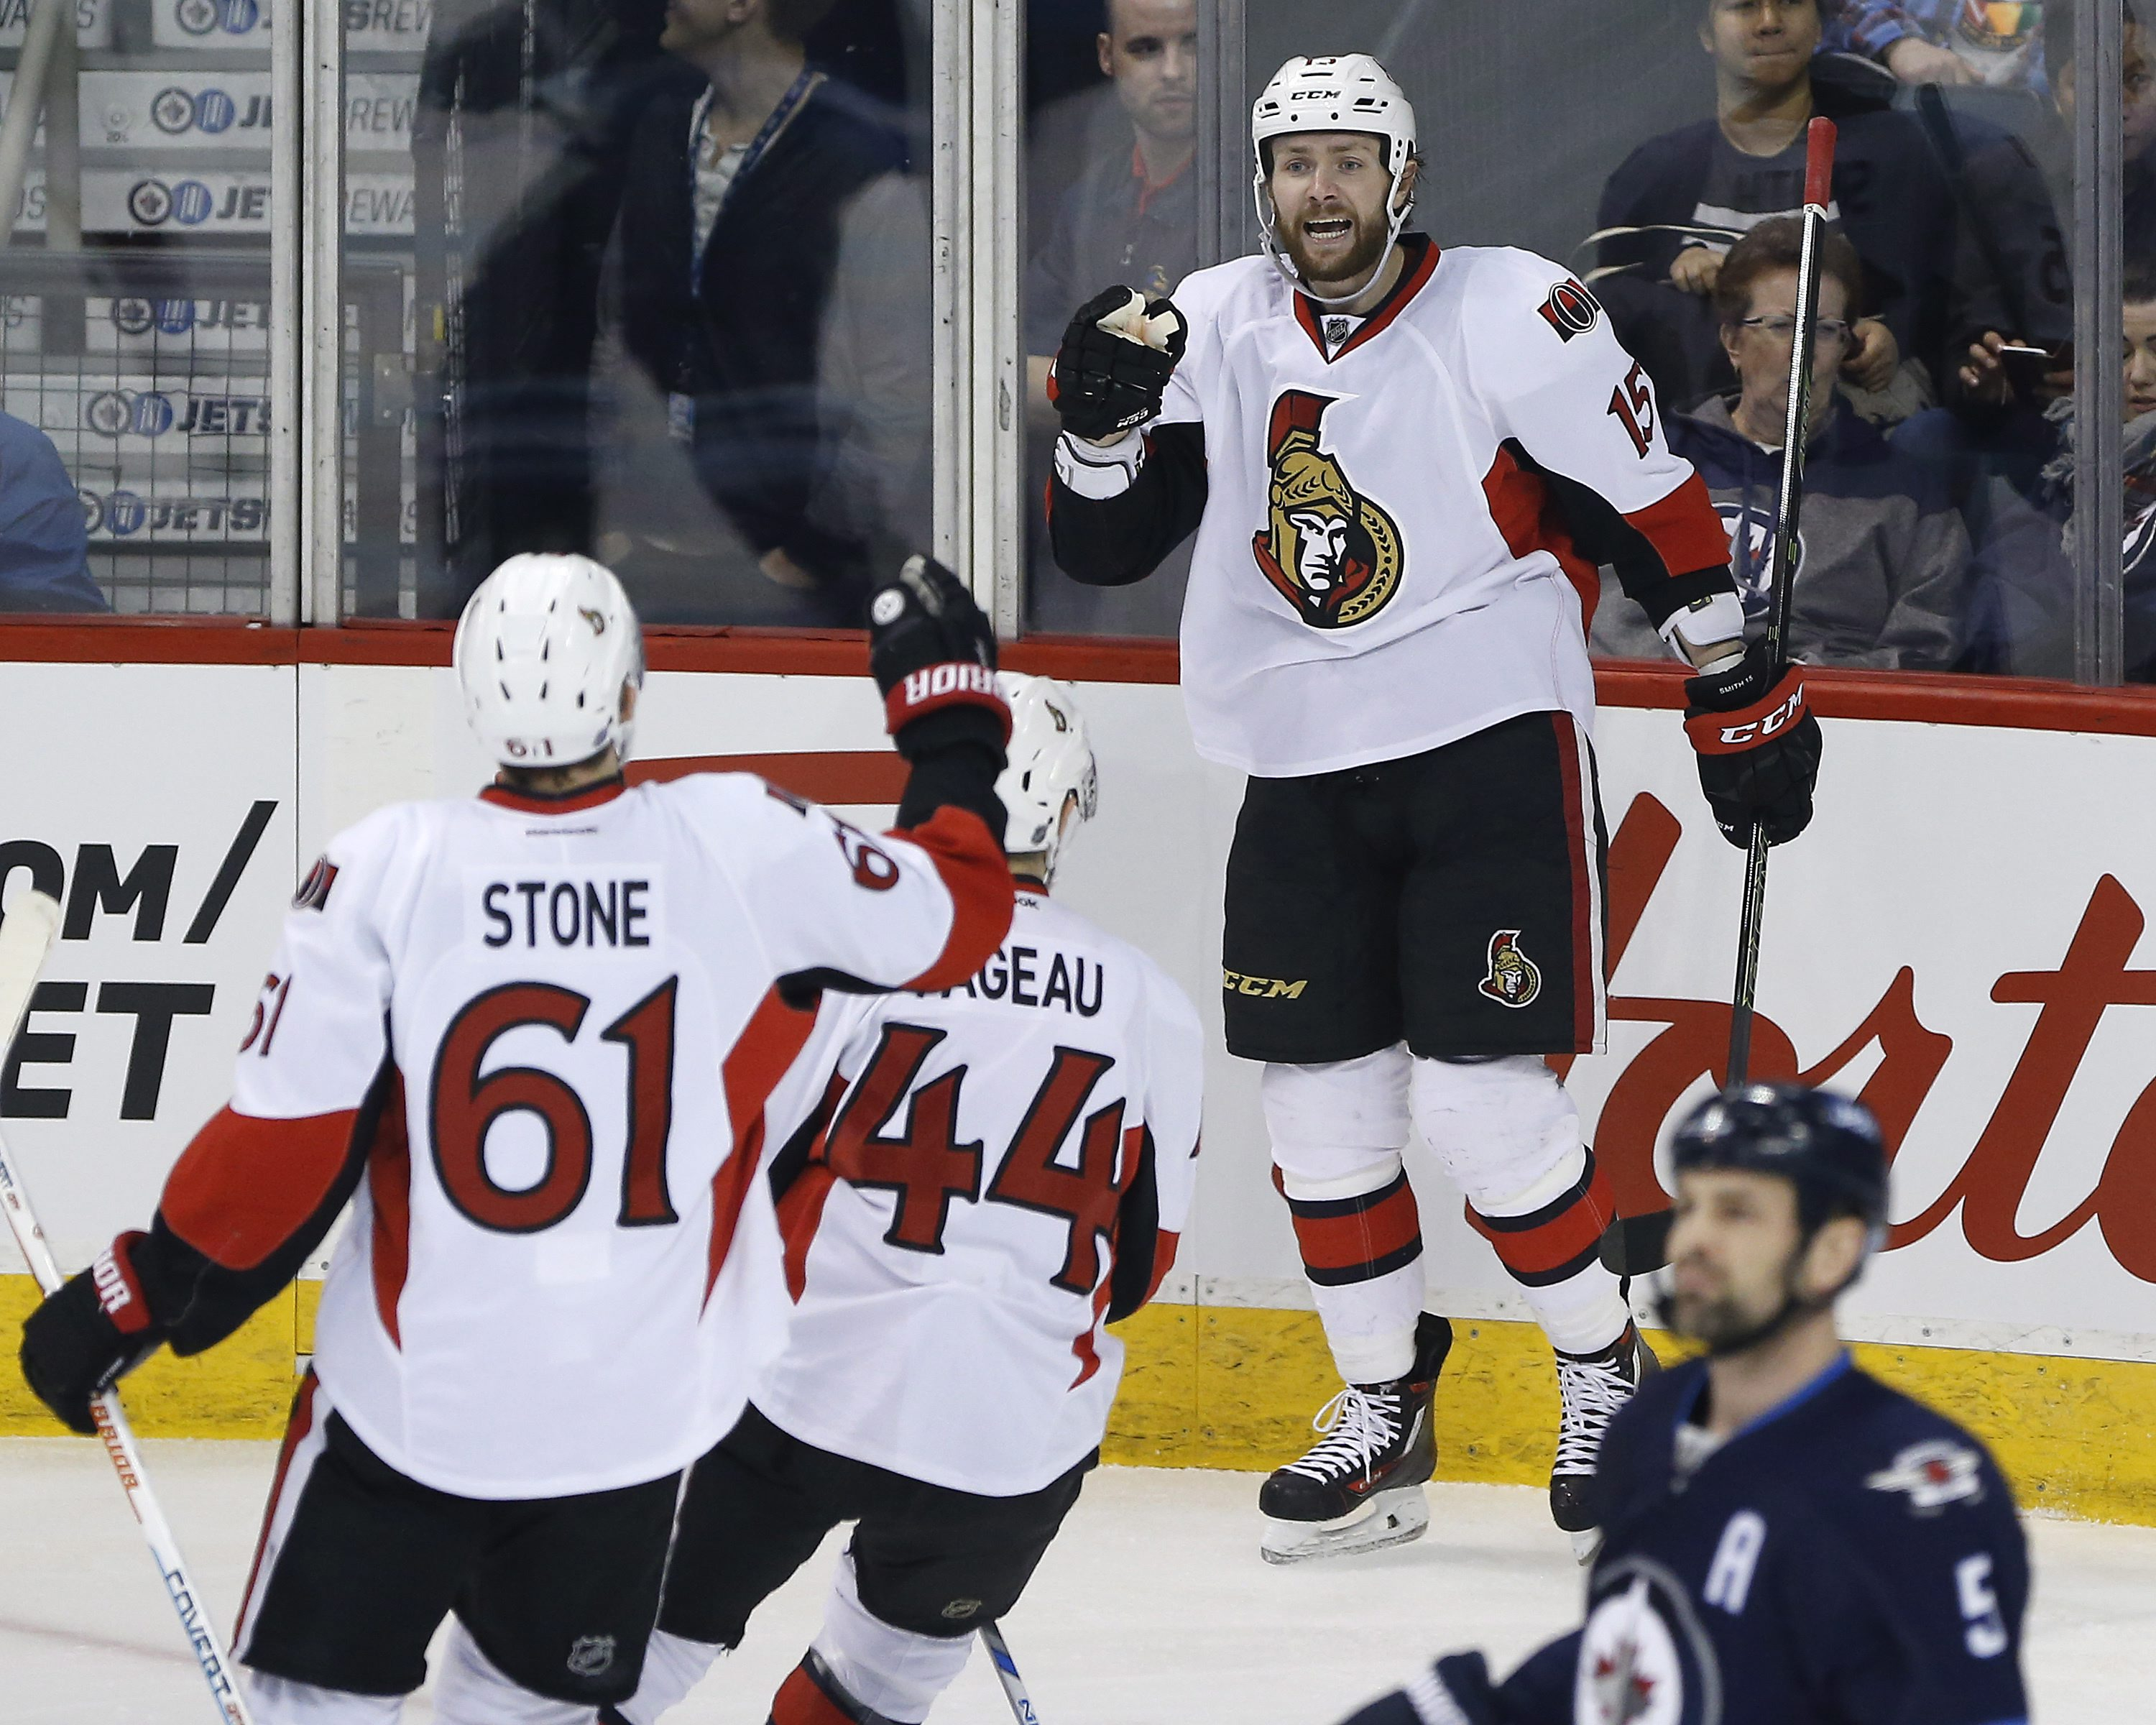 Ottawa Senators' Mark Stone (61), Jean-Gabriel Pageau (44) and Zack Smith (15) celebrate Smith's goal against the Winnipeg Jets during the first period of an NHL hockey game Tuesday, March 30, 2016, in Winnipeg, Manitoba. (John Woods/The Canadian Press vi